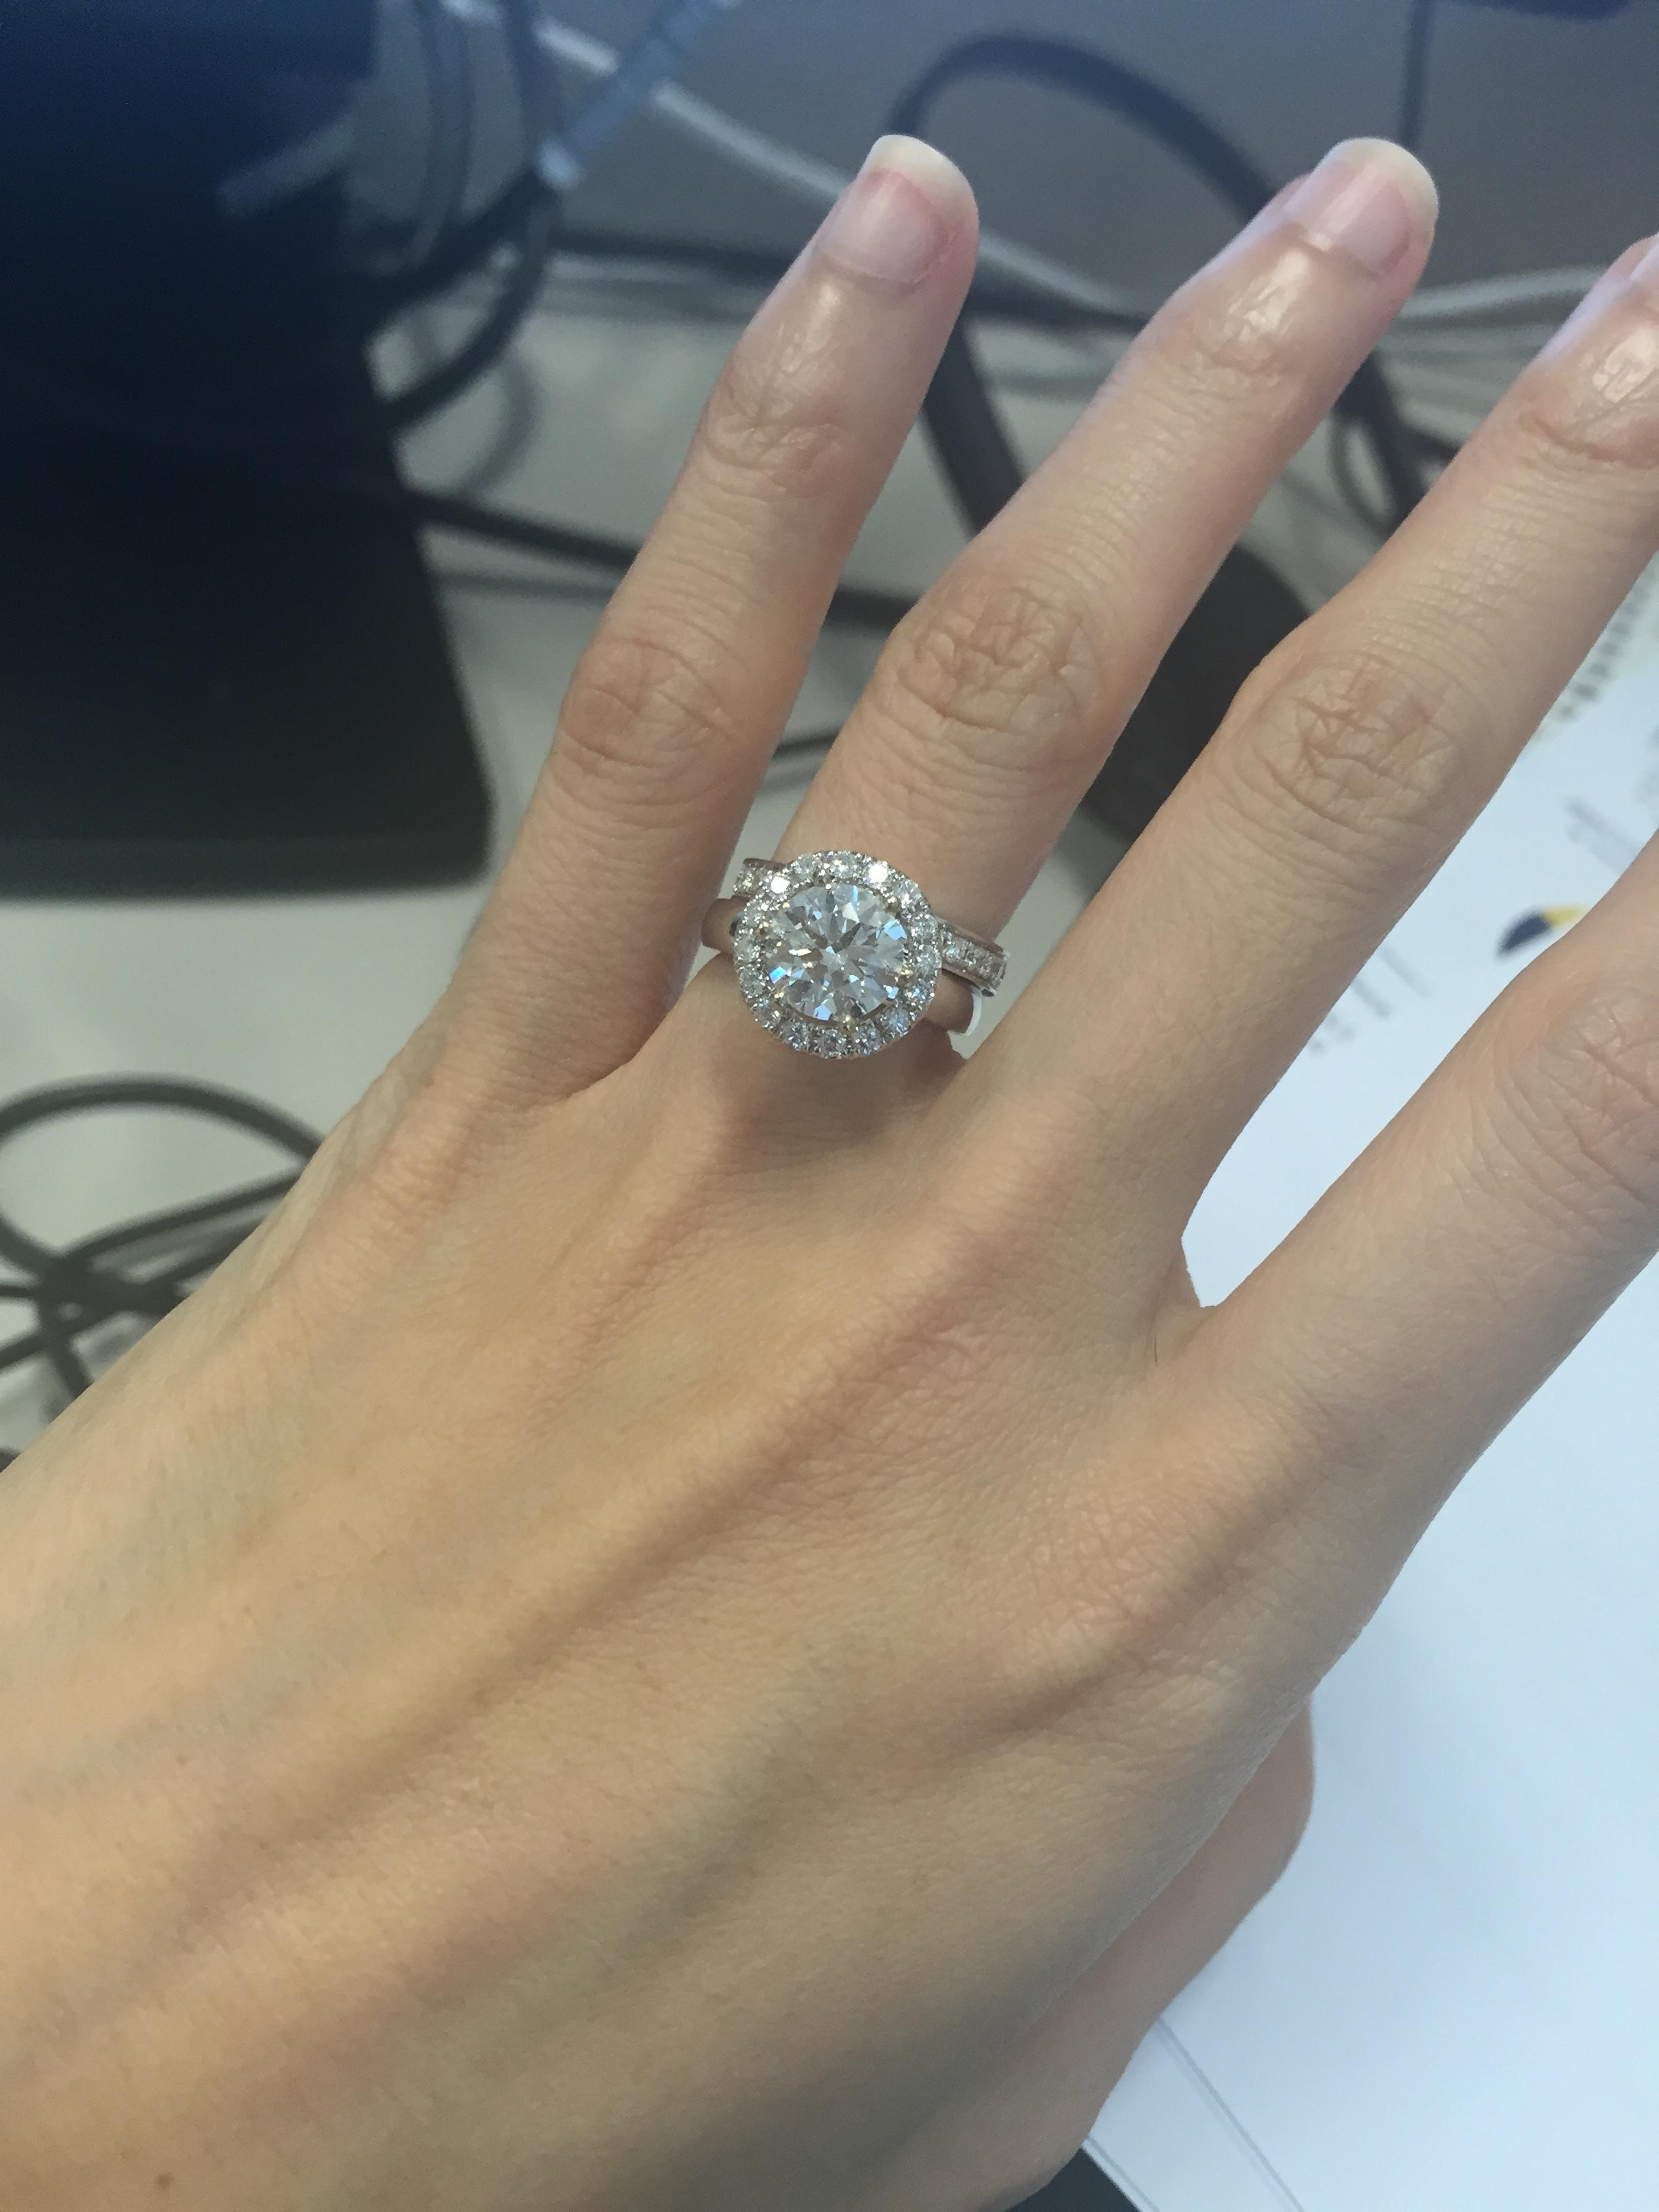 I Just Reset My Engagement Ring- Is It Tacky?